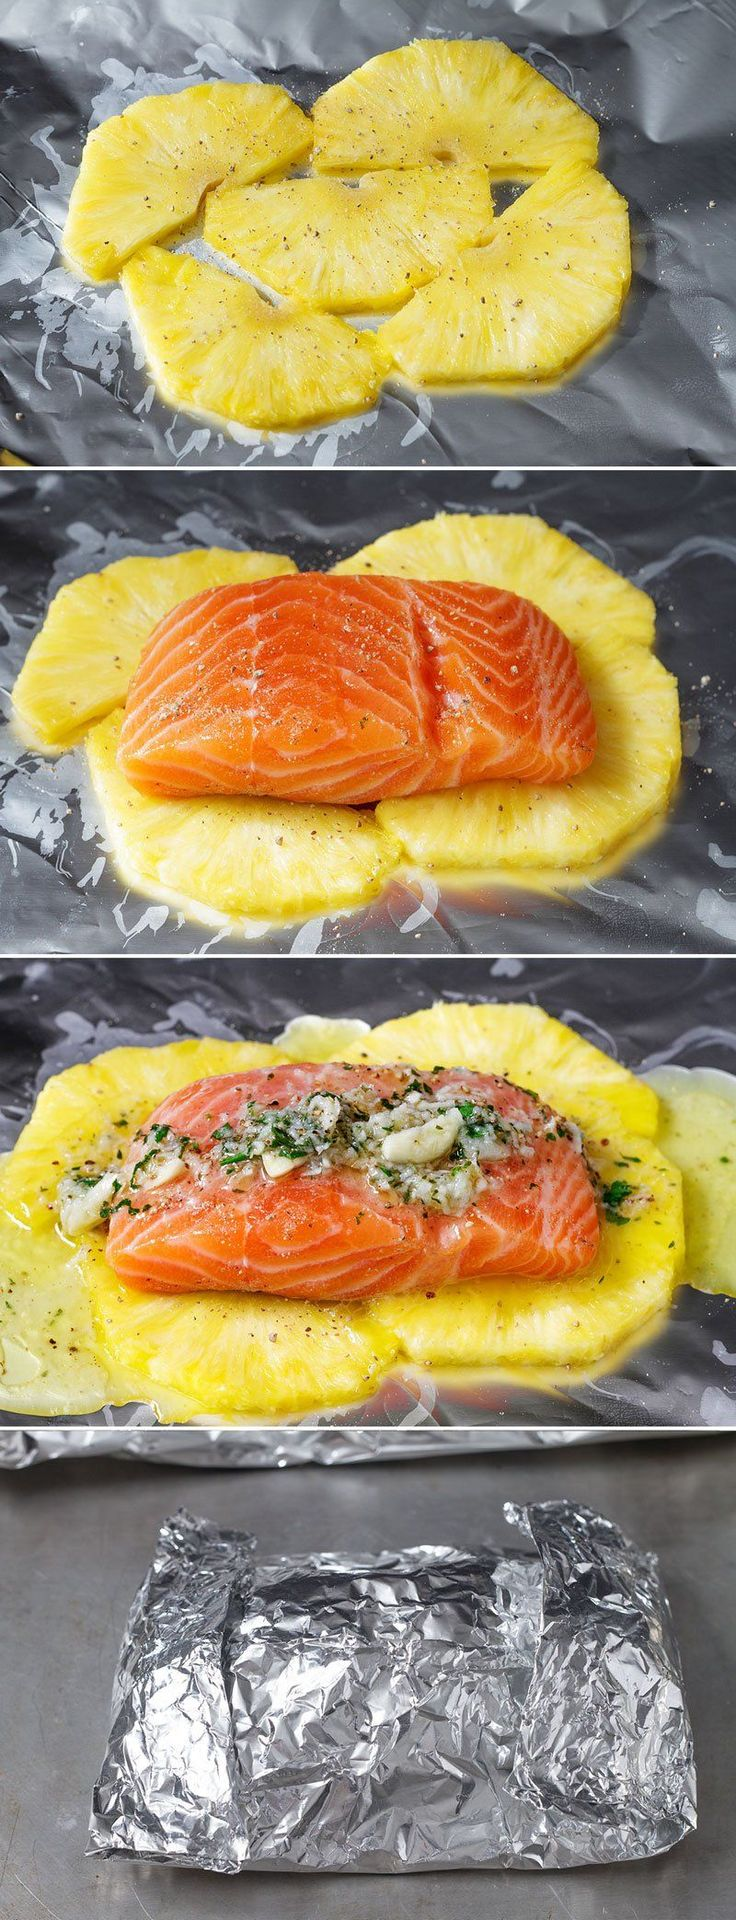 Multiplier onions recipes for salmon